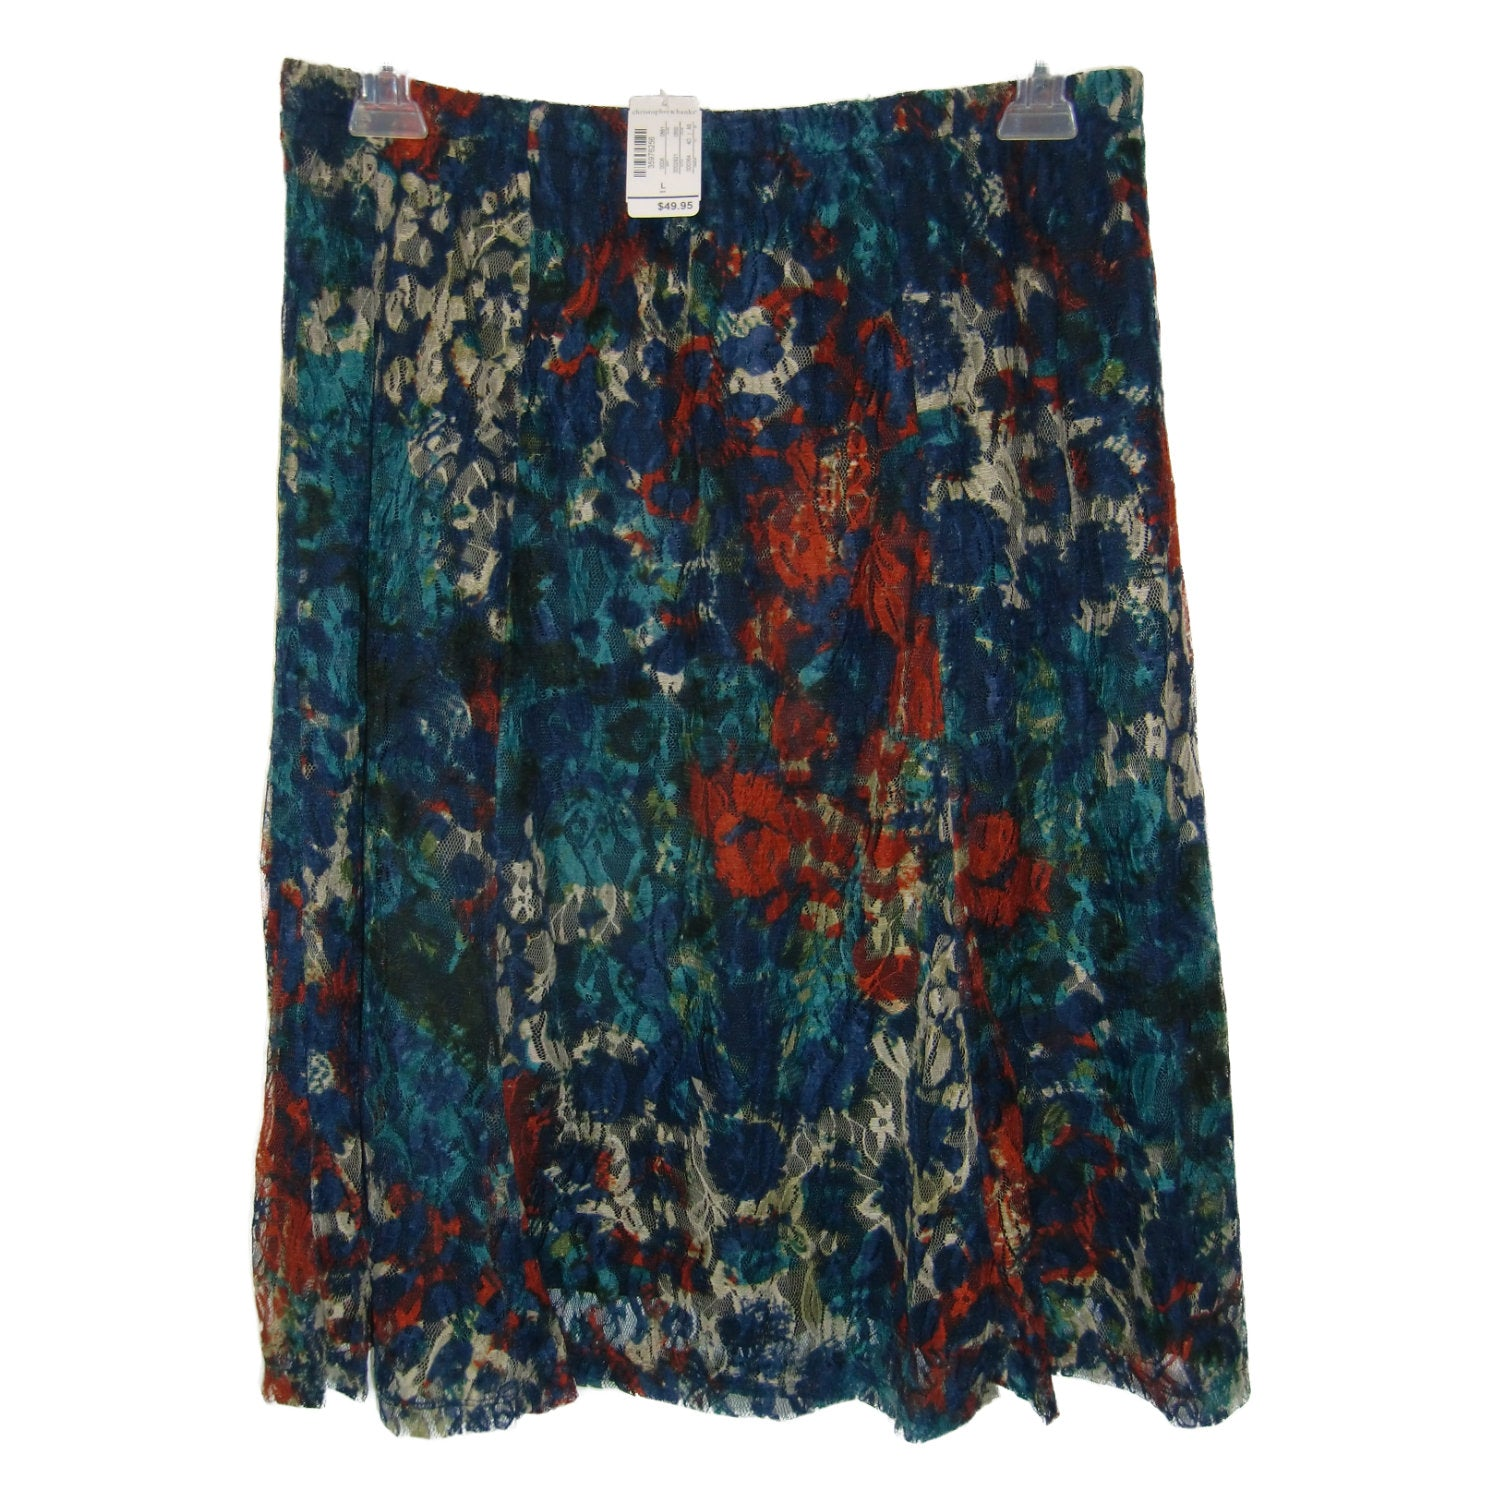 new Christopher & Banks multicolored skirt